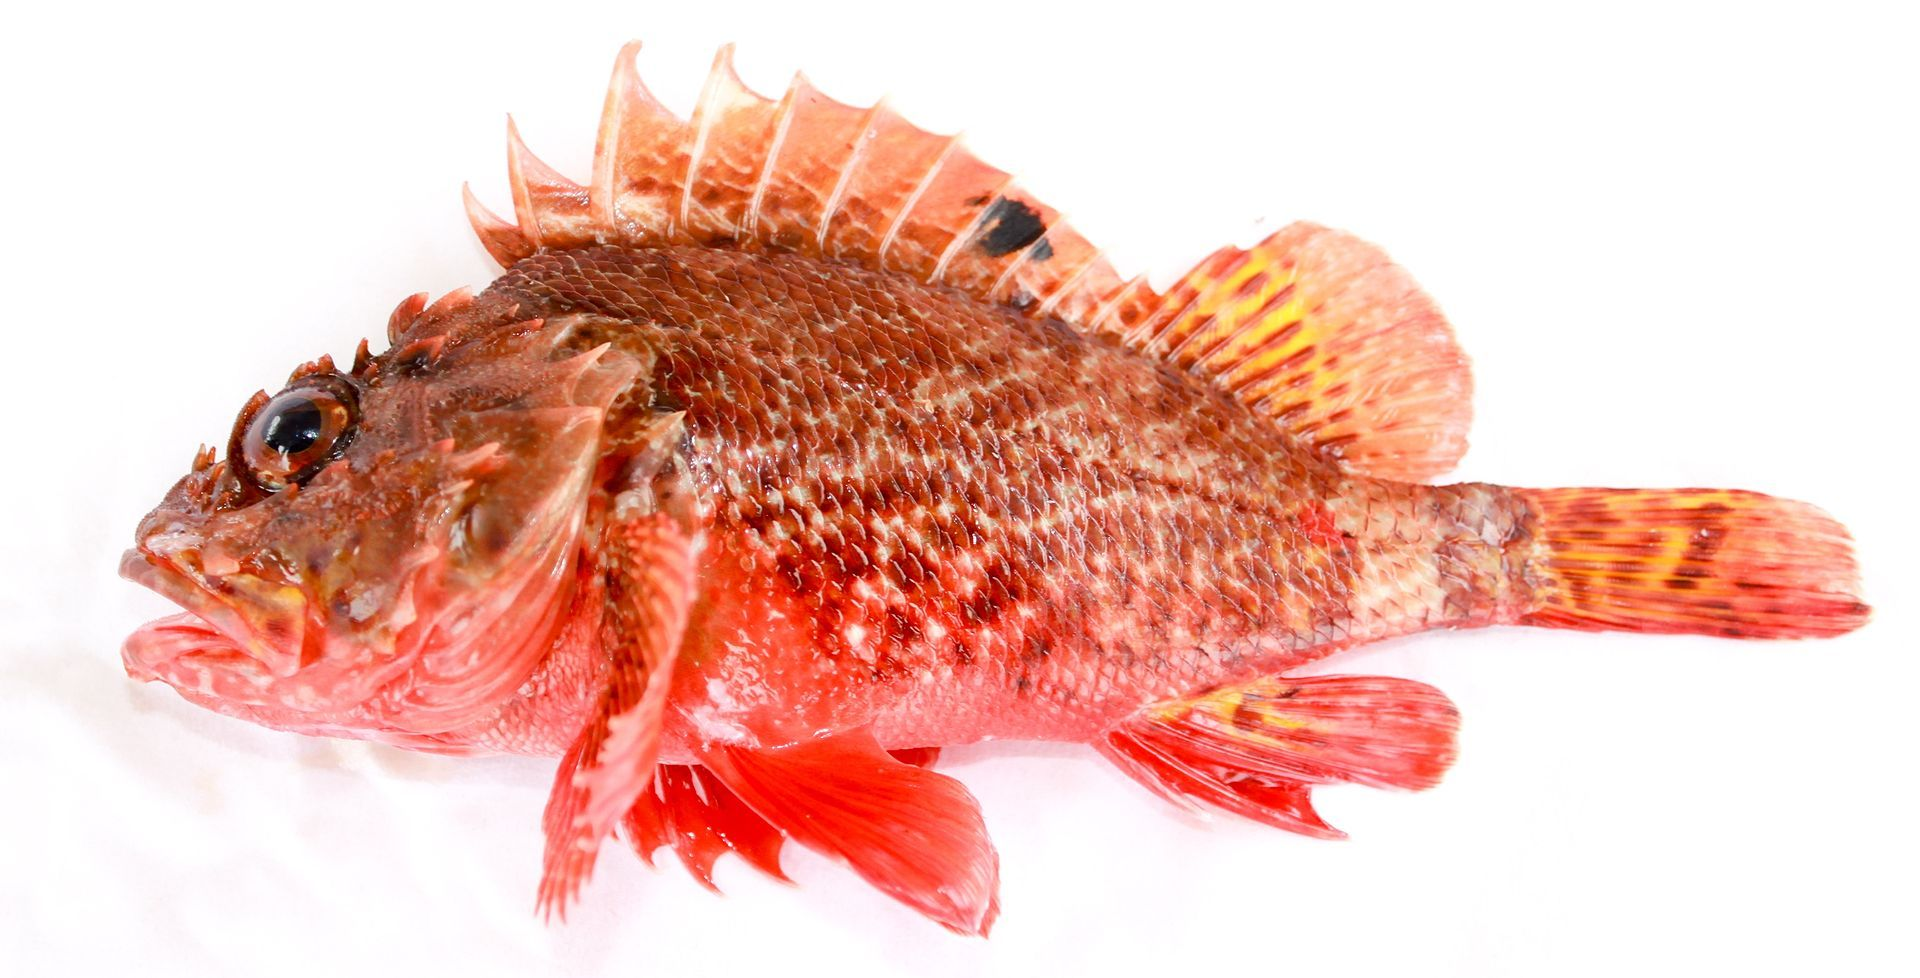 Scorpaena papillosa (Schneider & Forster, 1801) Red Rockcod, or red scorpionfish,